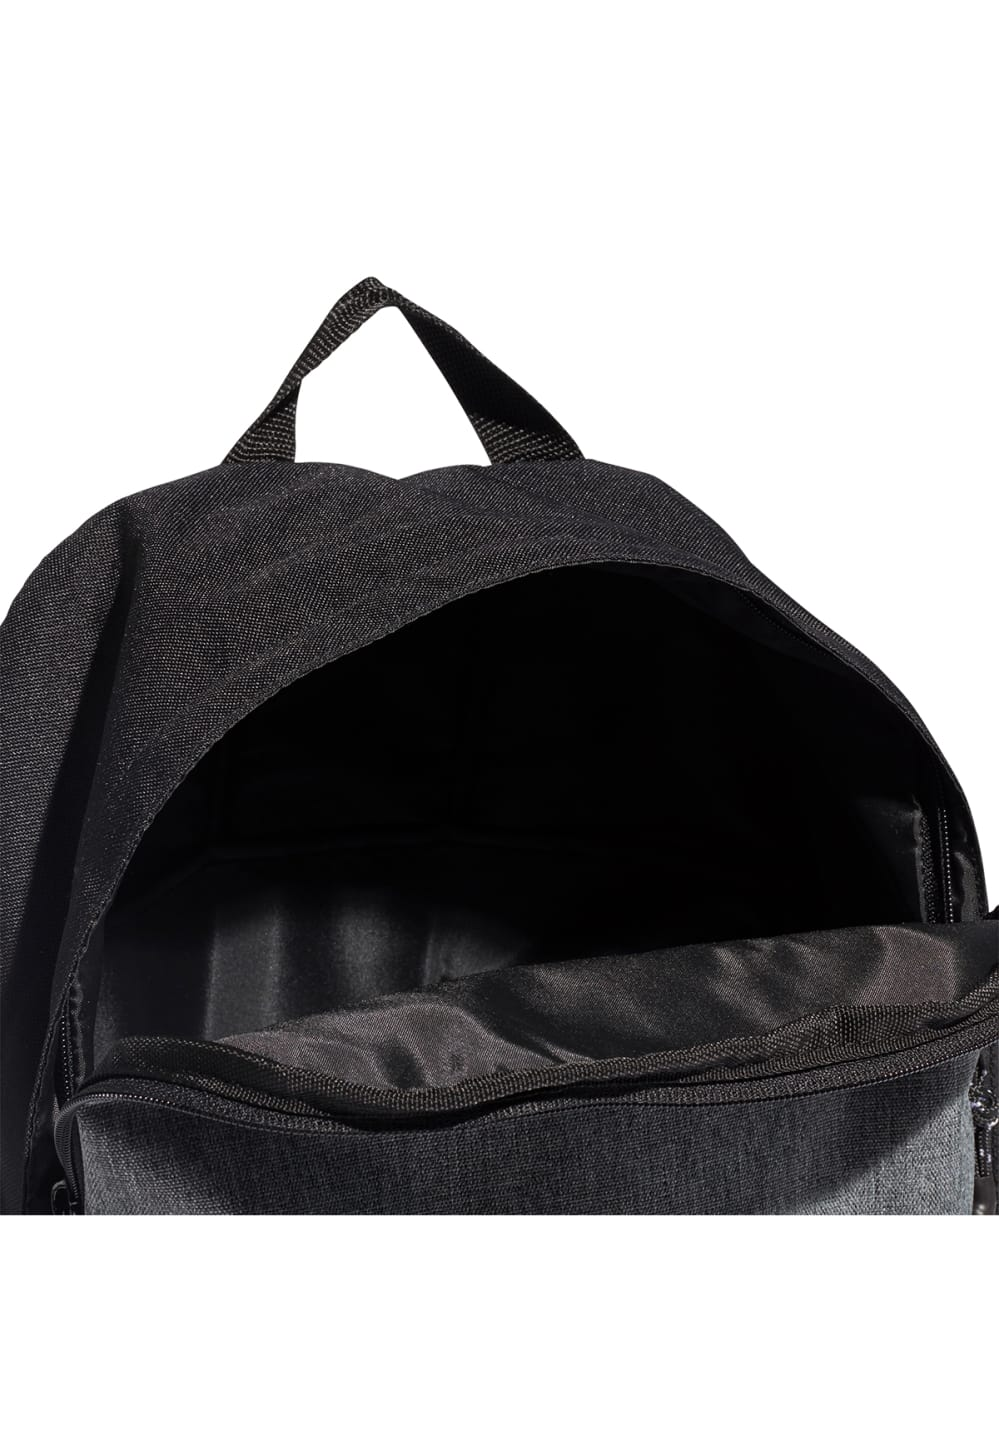 b81862688d3d ... adidas Daily XL Backpack - Backpacks for Men - Grey. Back to Overview.  1  2  3  4  5. Previous. Next